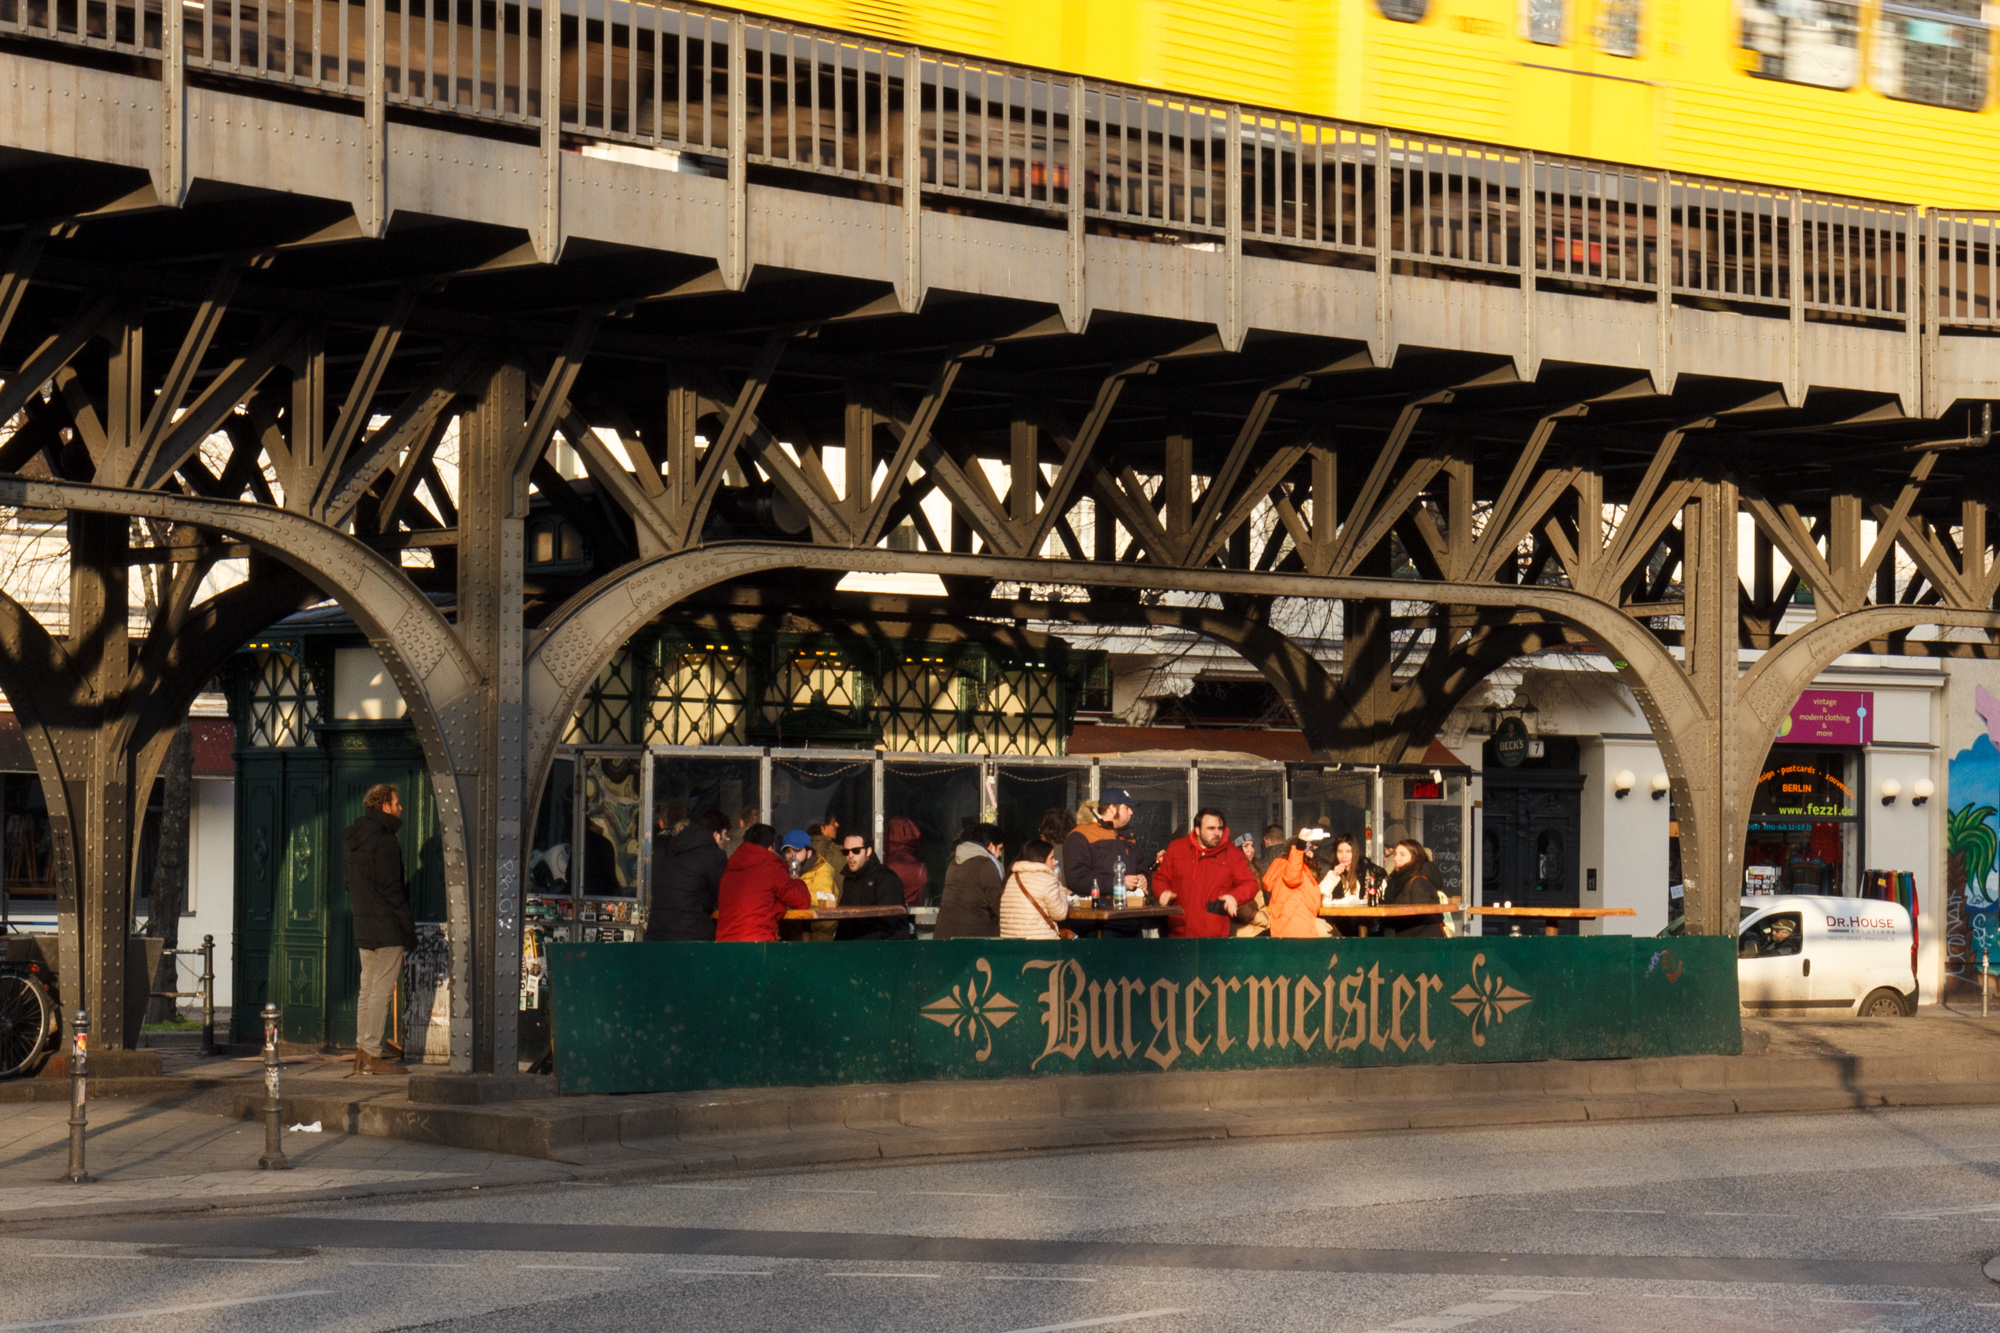 Burgermeister - a Berlin burger joint in a converted toilet - a rectangular variation of the Café Achteck - Berlin's classic 19th century green cast iron public toilets